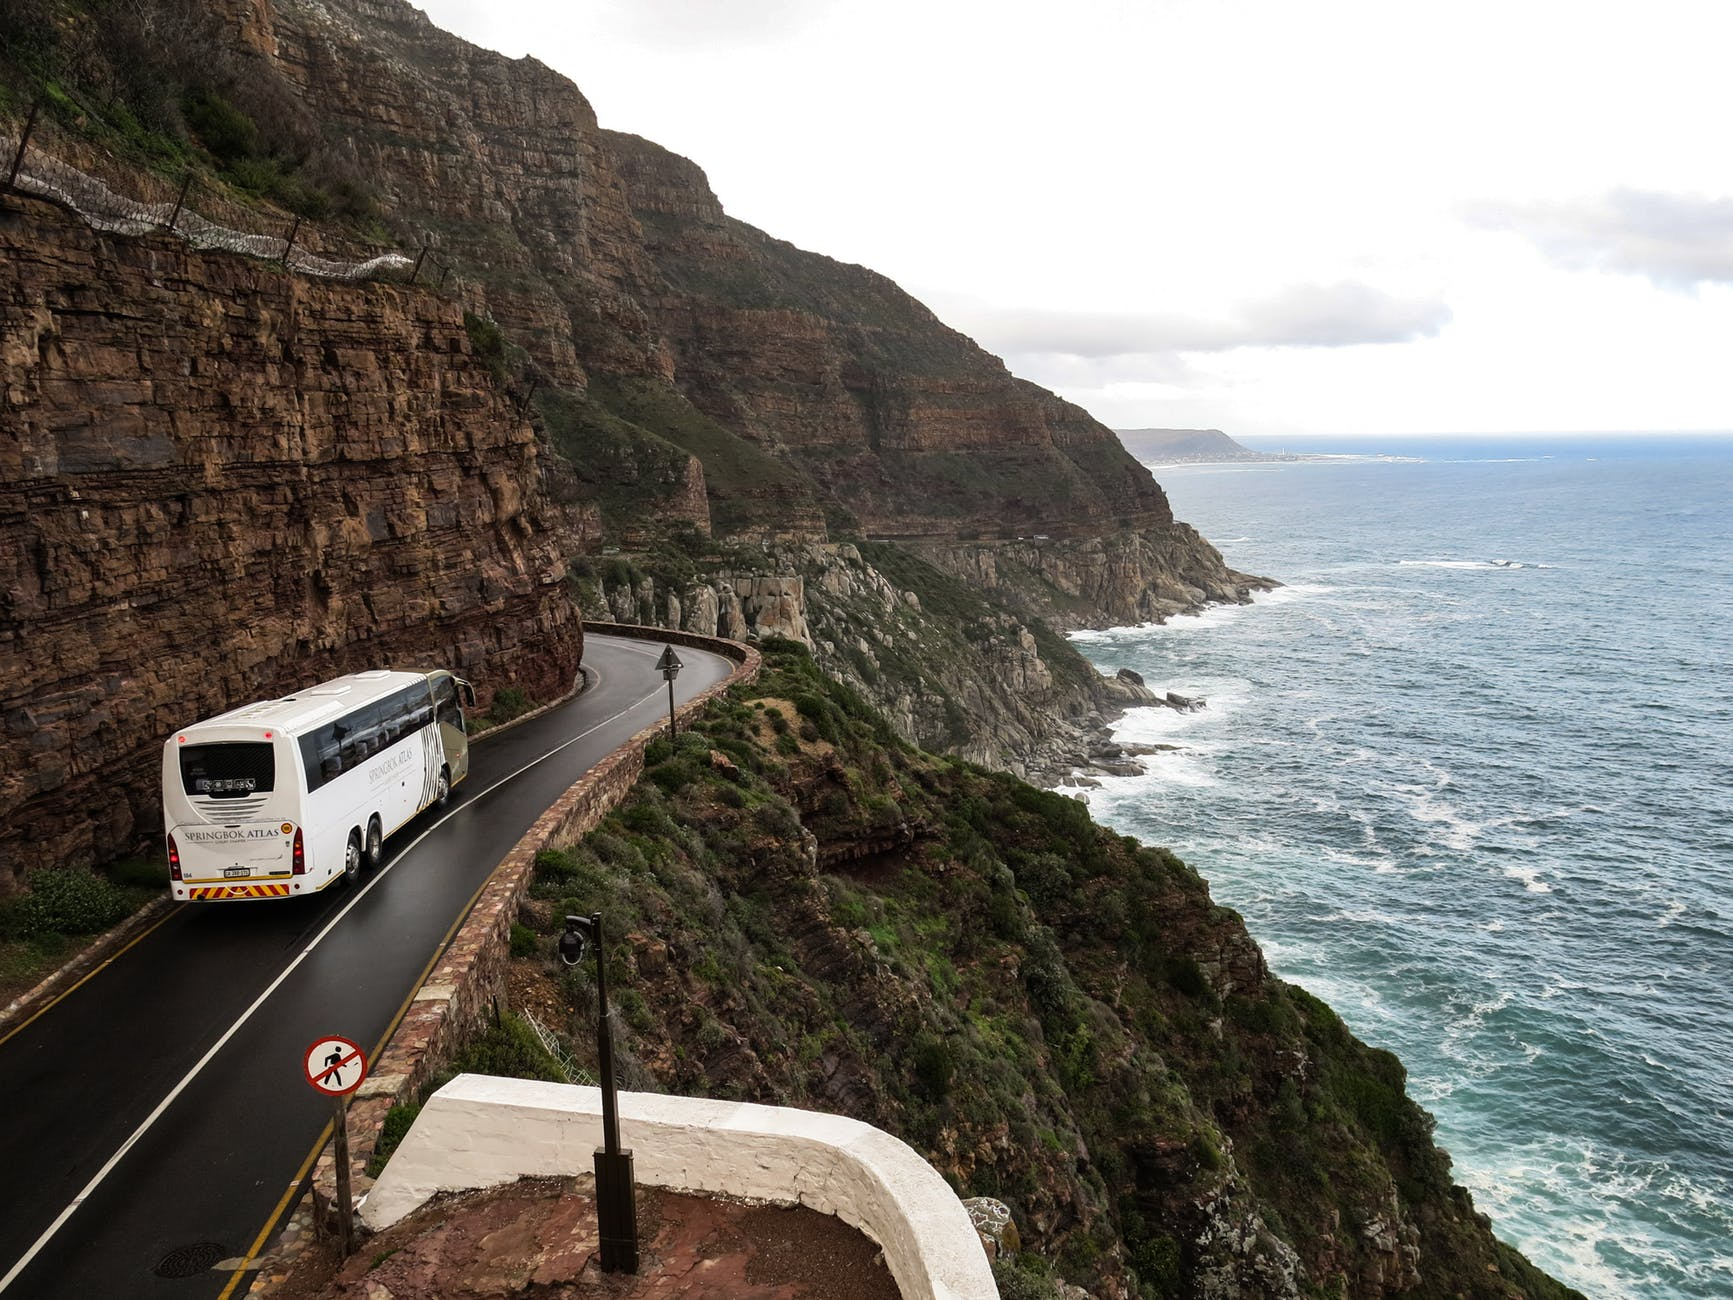 white bus on road near cliff